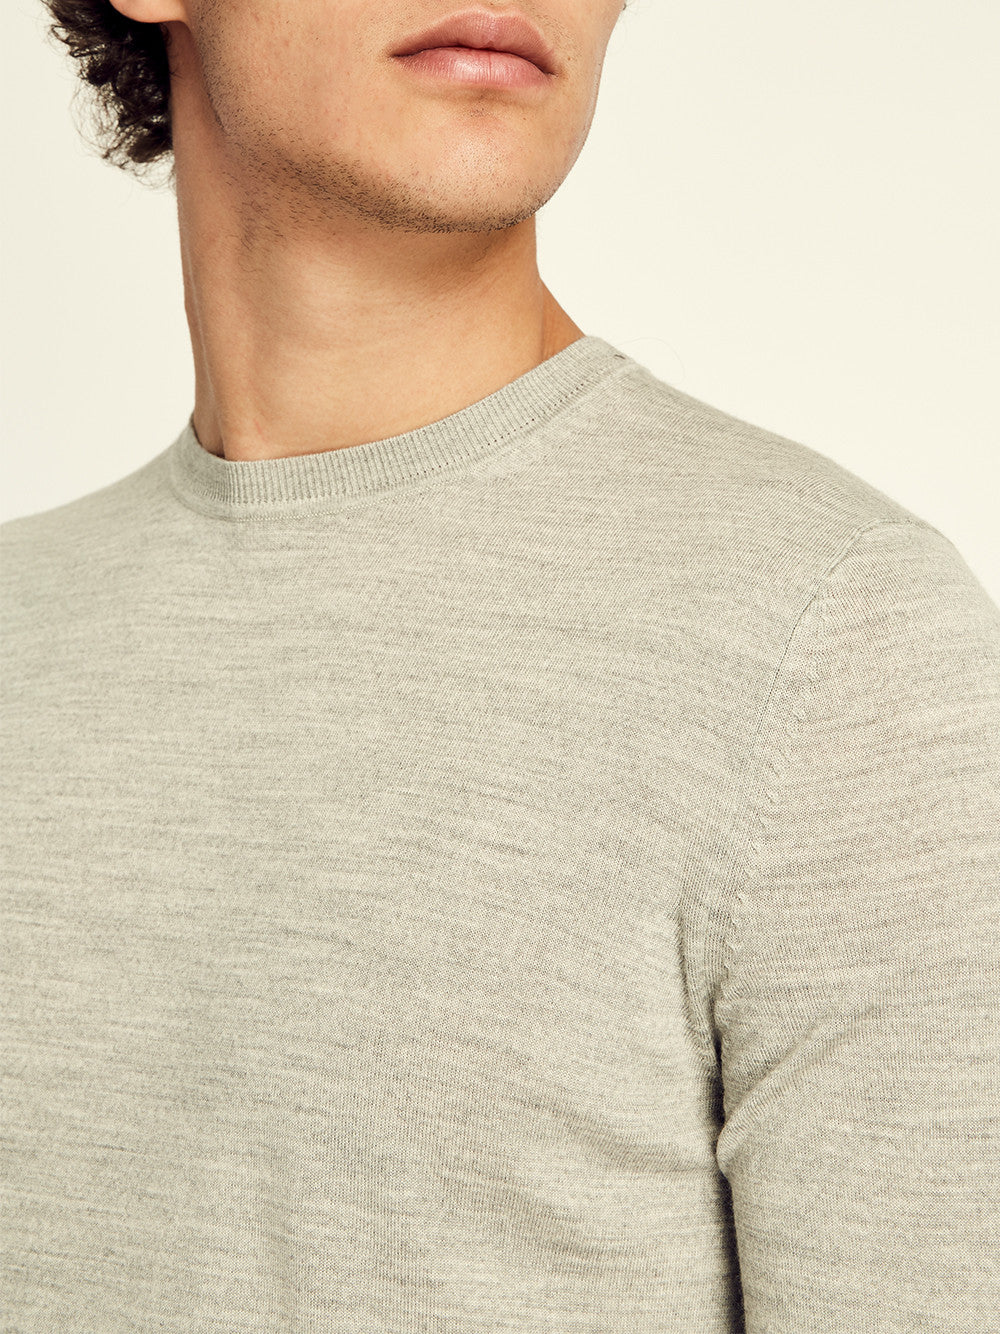 Merino Crewneck Sweater